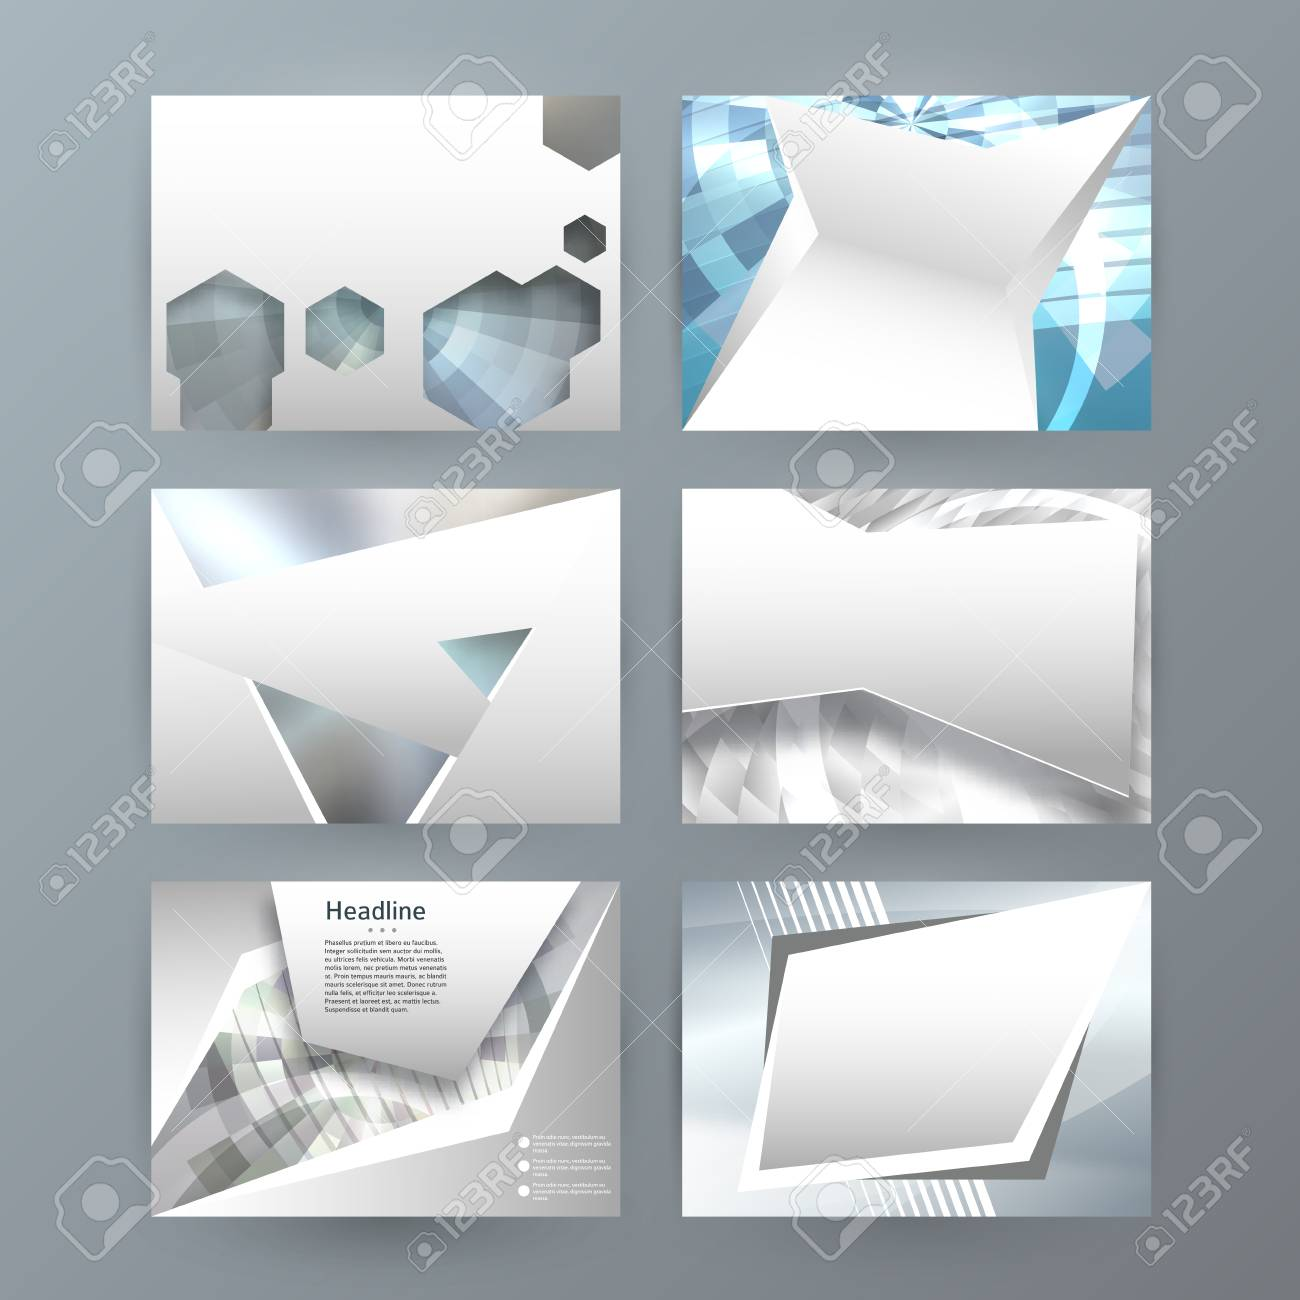 Business templates for multipurpose presentation slides. Easy editable vector layouts. Set of 6 horizontal Silver design brochure flyer, Annual report mockup graphic colors metalic grey, steel - 89764061